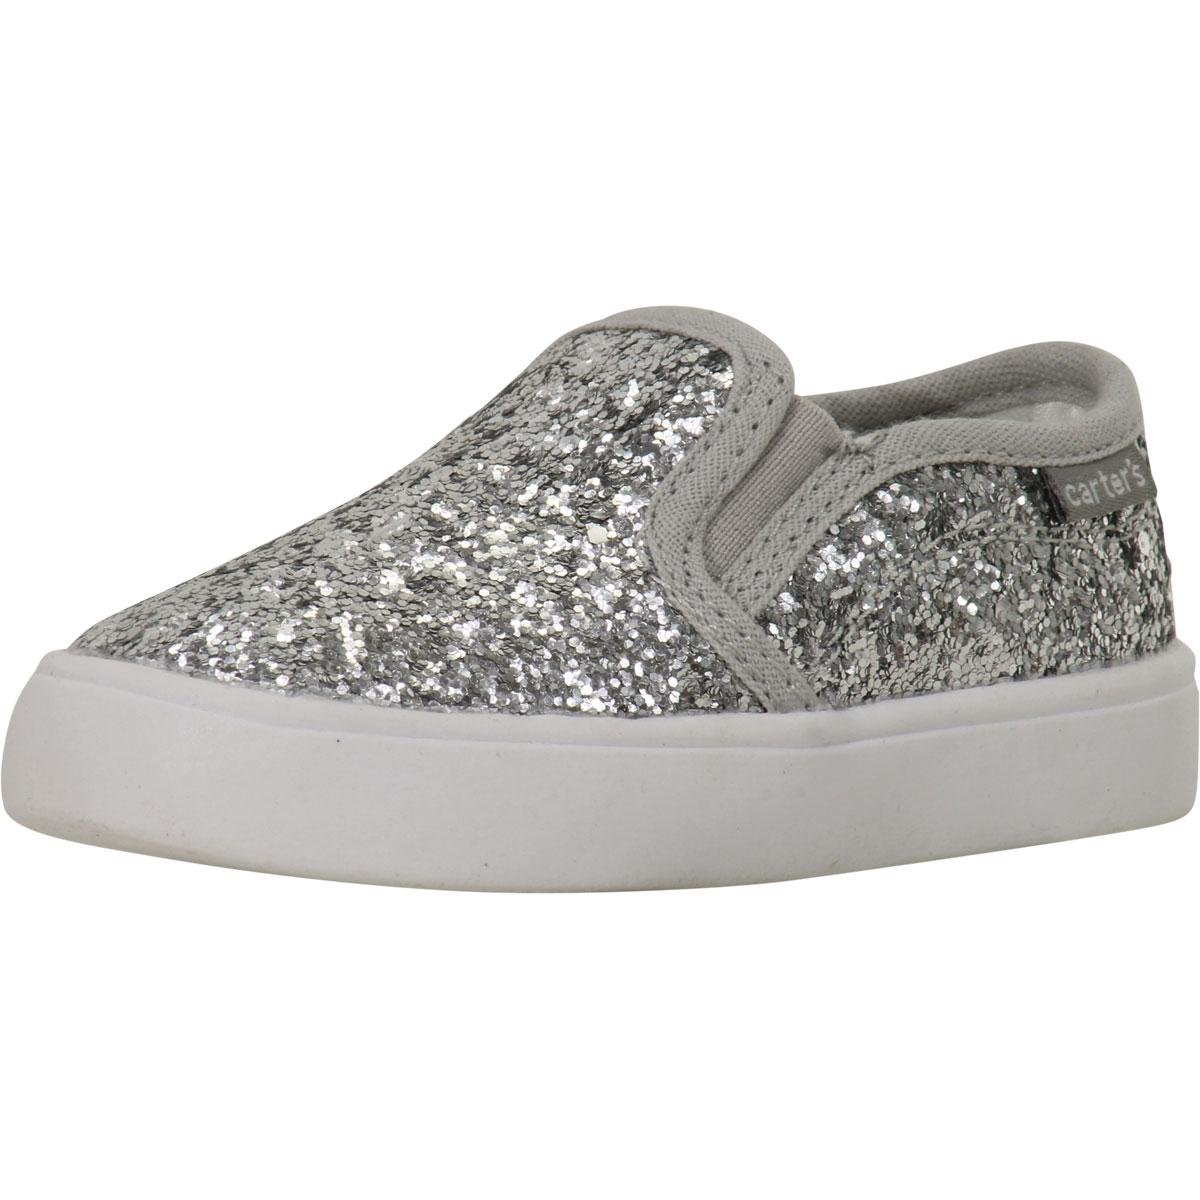 a699ec87677 Carter s Toddler Little Girl s Tween5 Glitter Loafers Shoes by Carter s